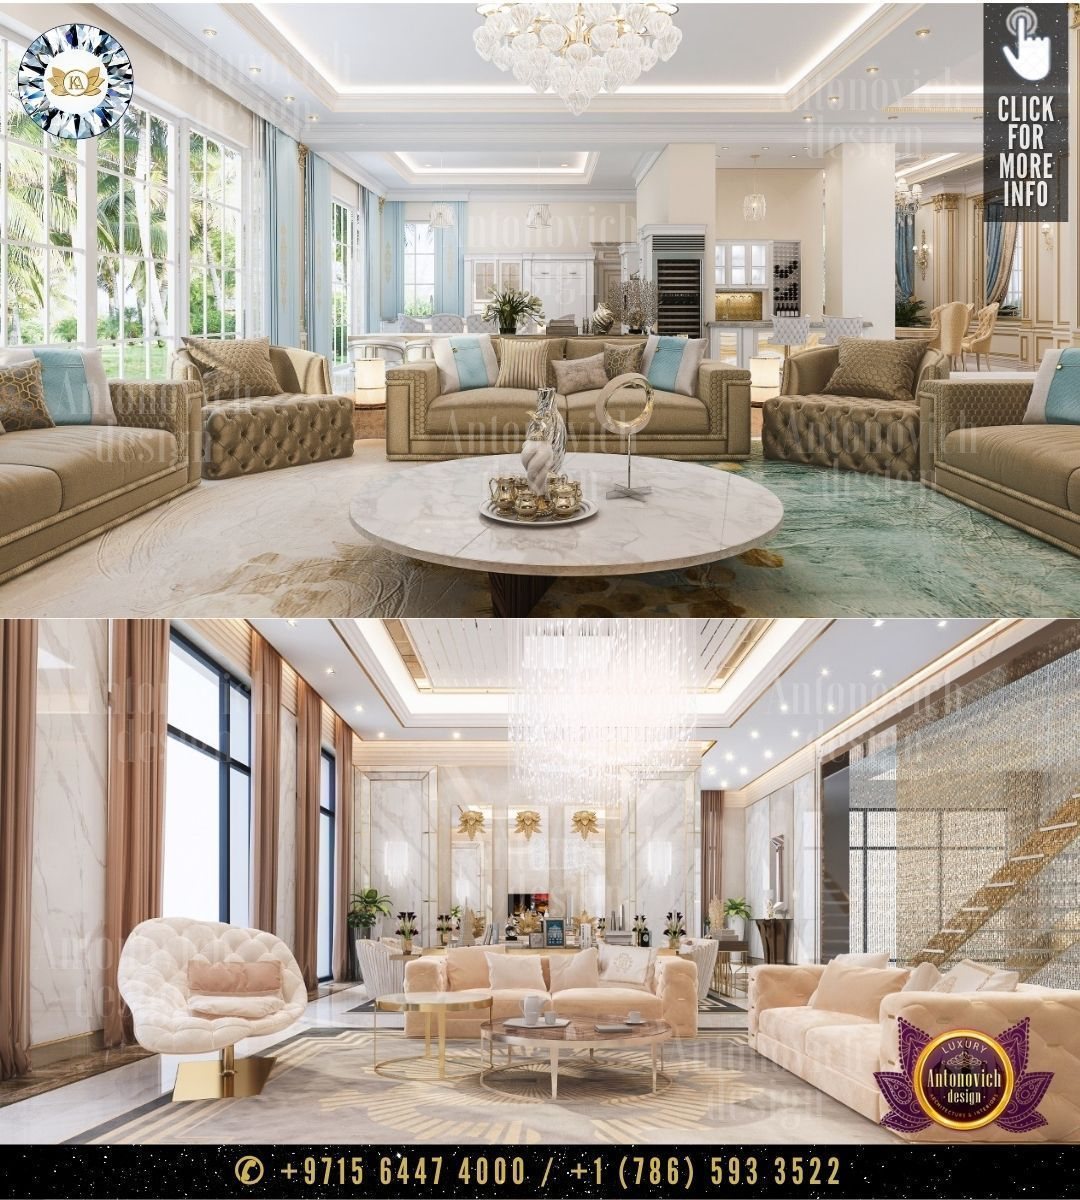 Amazing Living Room Design In Usa The Best Living Room Interior Design In 2020 Interior Design Usa Living Room Designs Interior Design